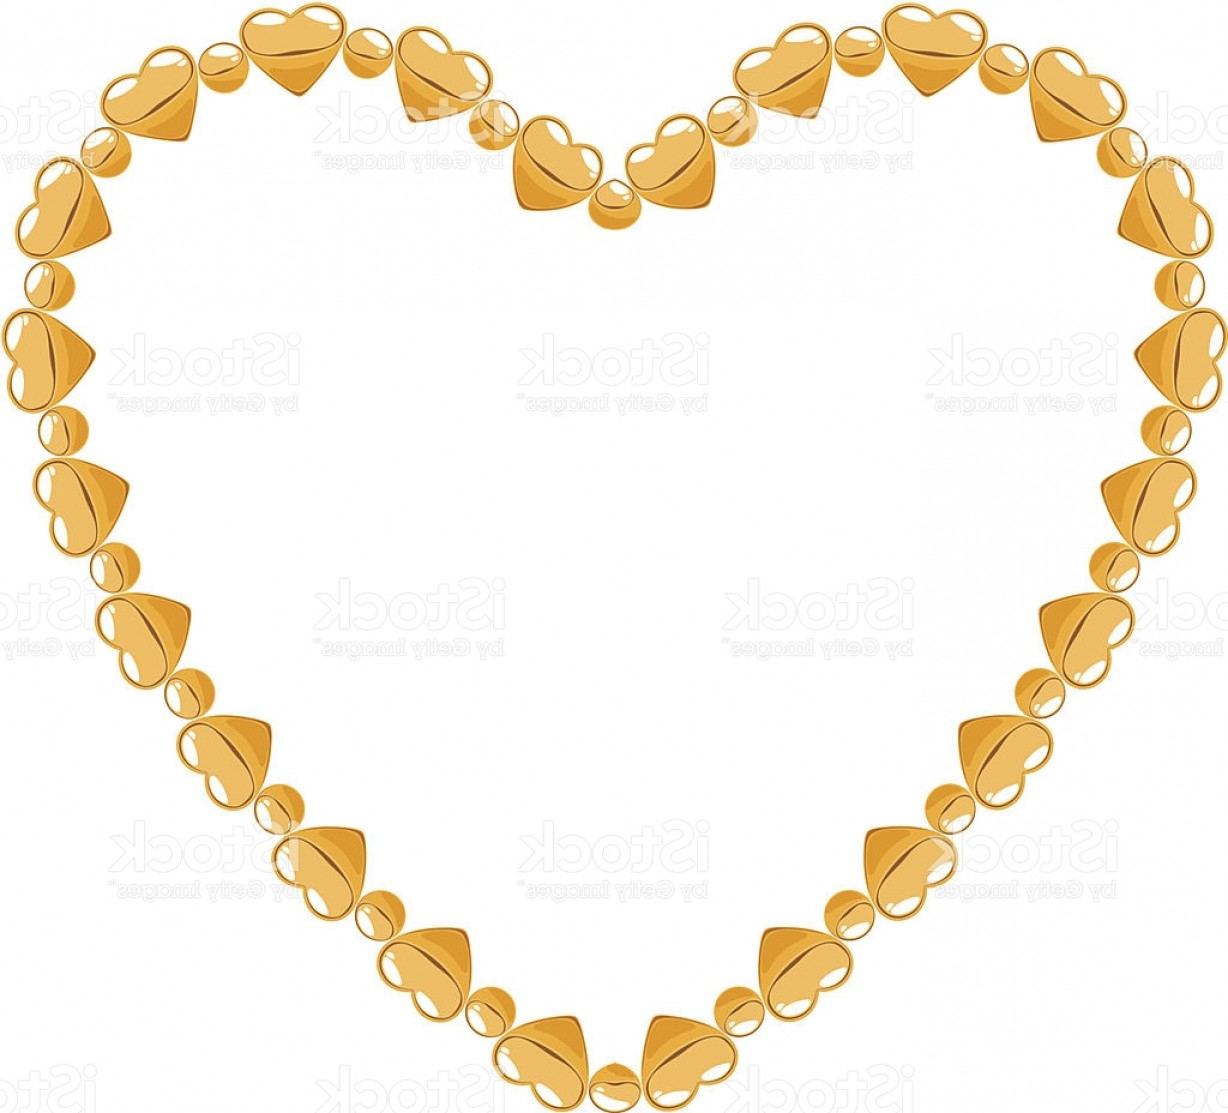 Necklace Vector Chain Grapicts: Heart Of Golden Chain With Heart Segments And Round Beads Gm